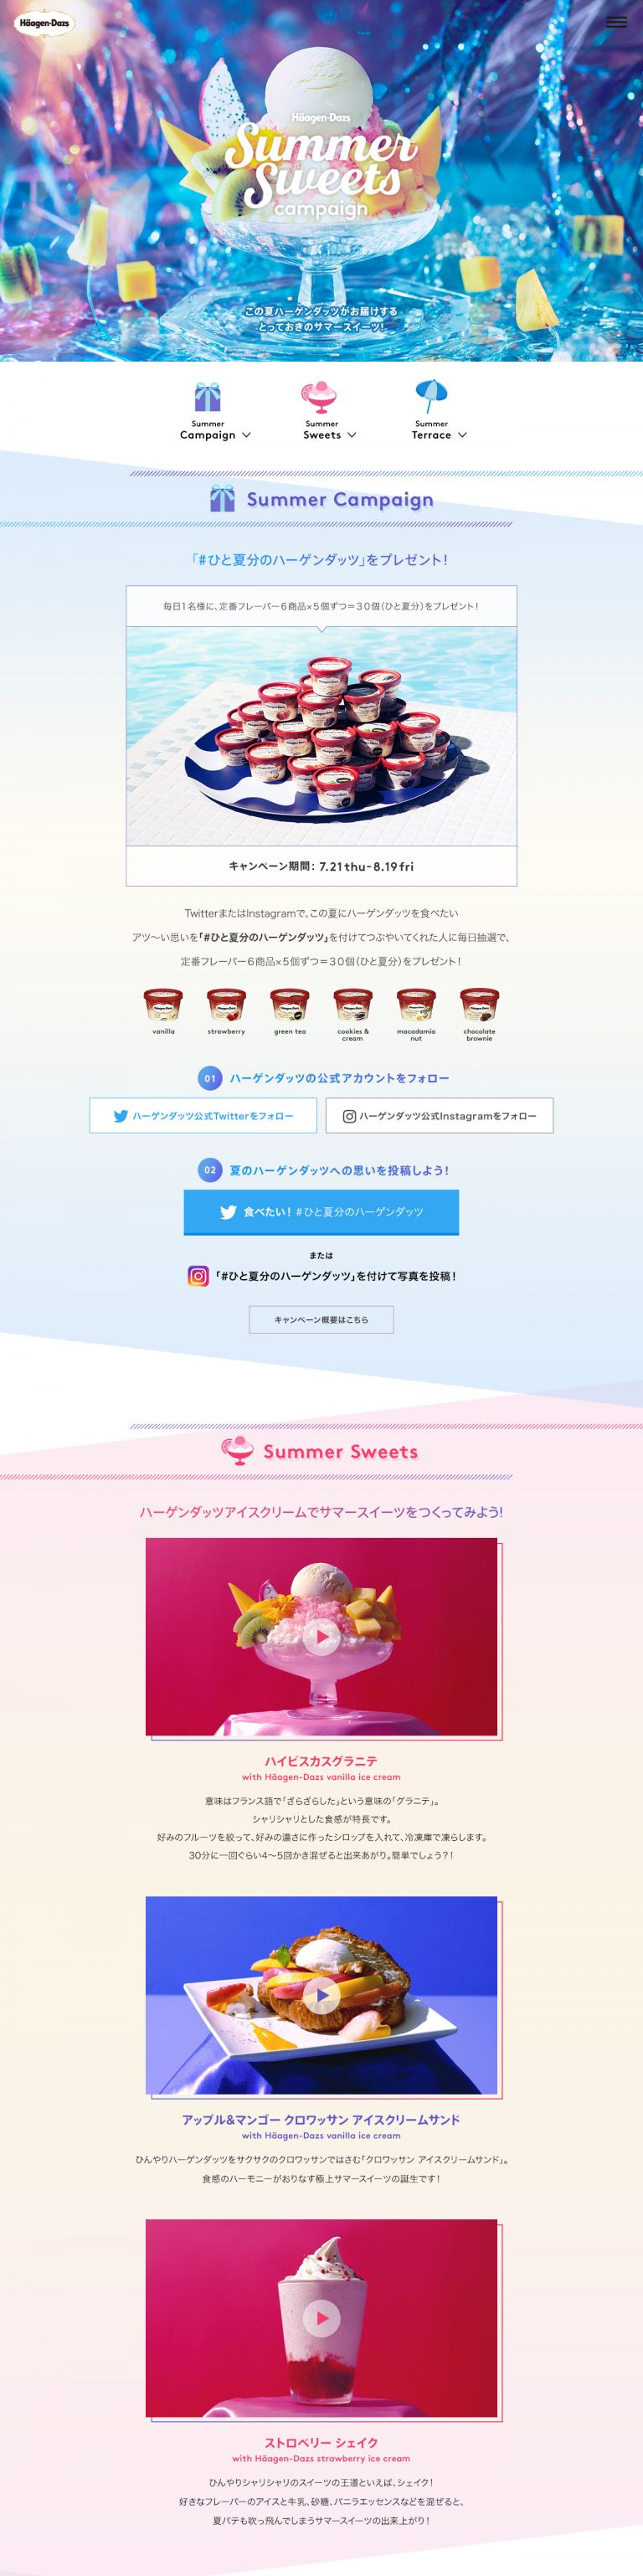 summersweets_pc